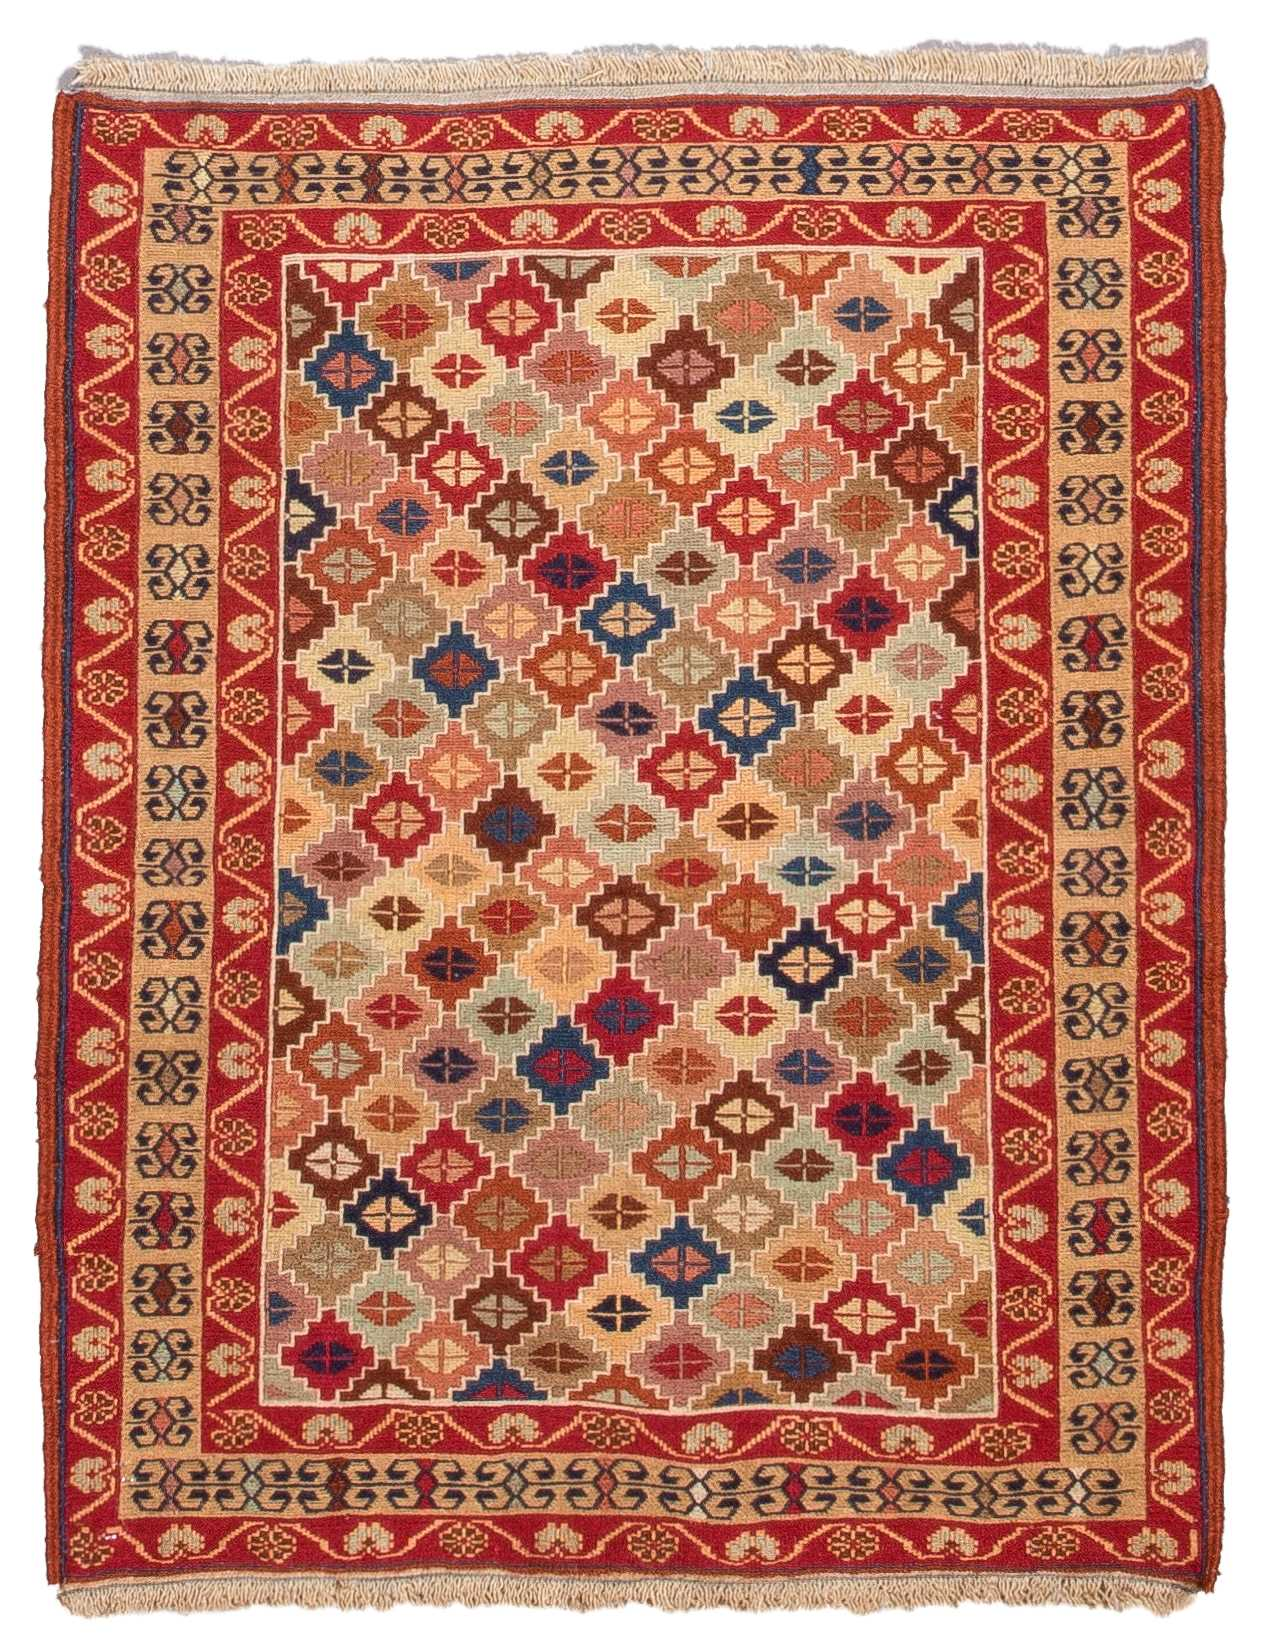 Small Size Area Rug 1416